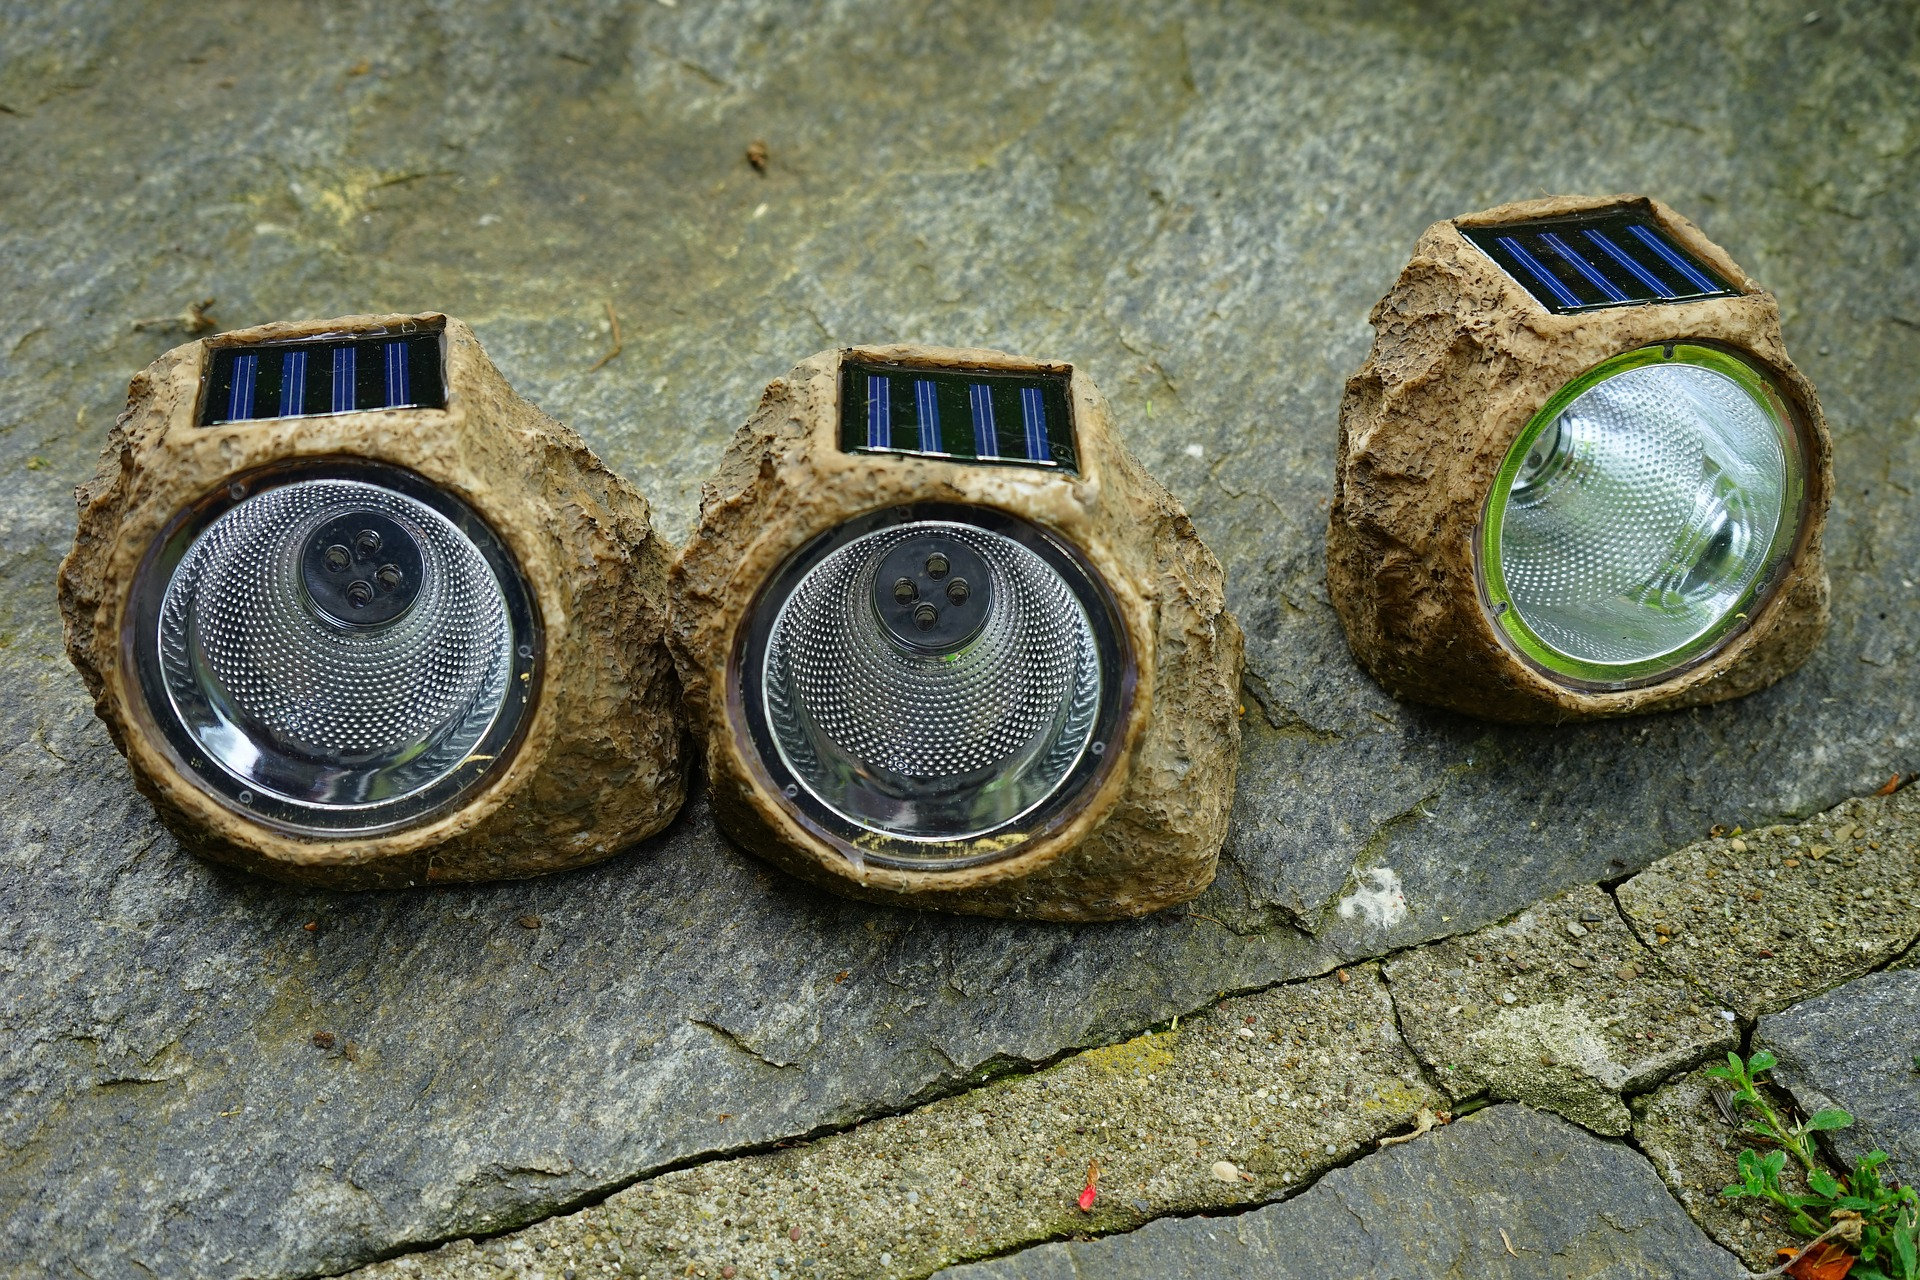 image of solar powered lights with an artificial rock housing